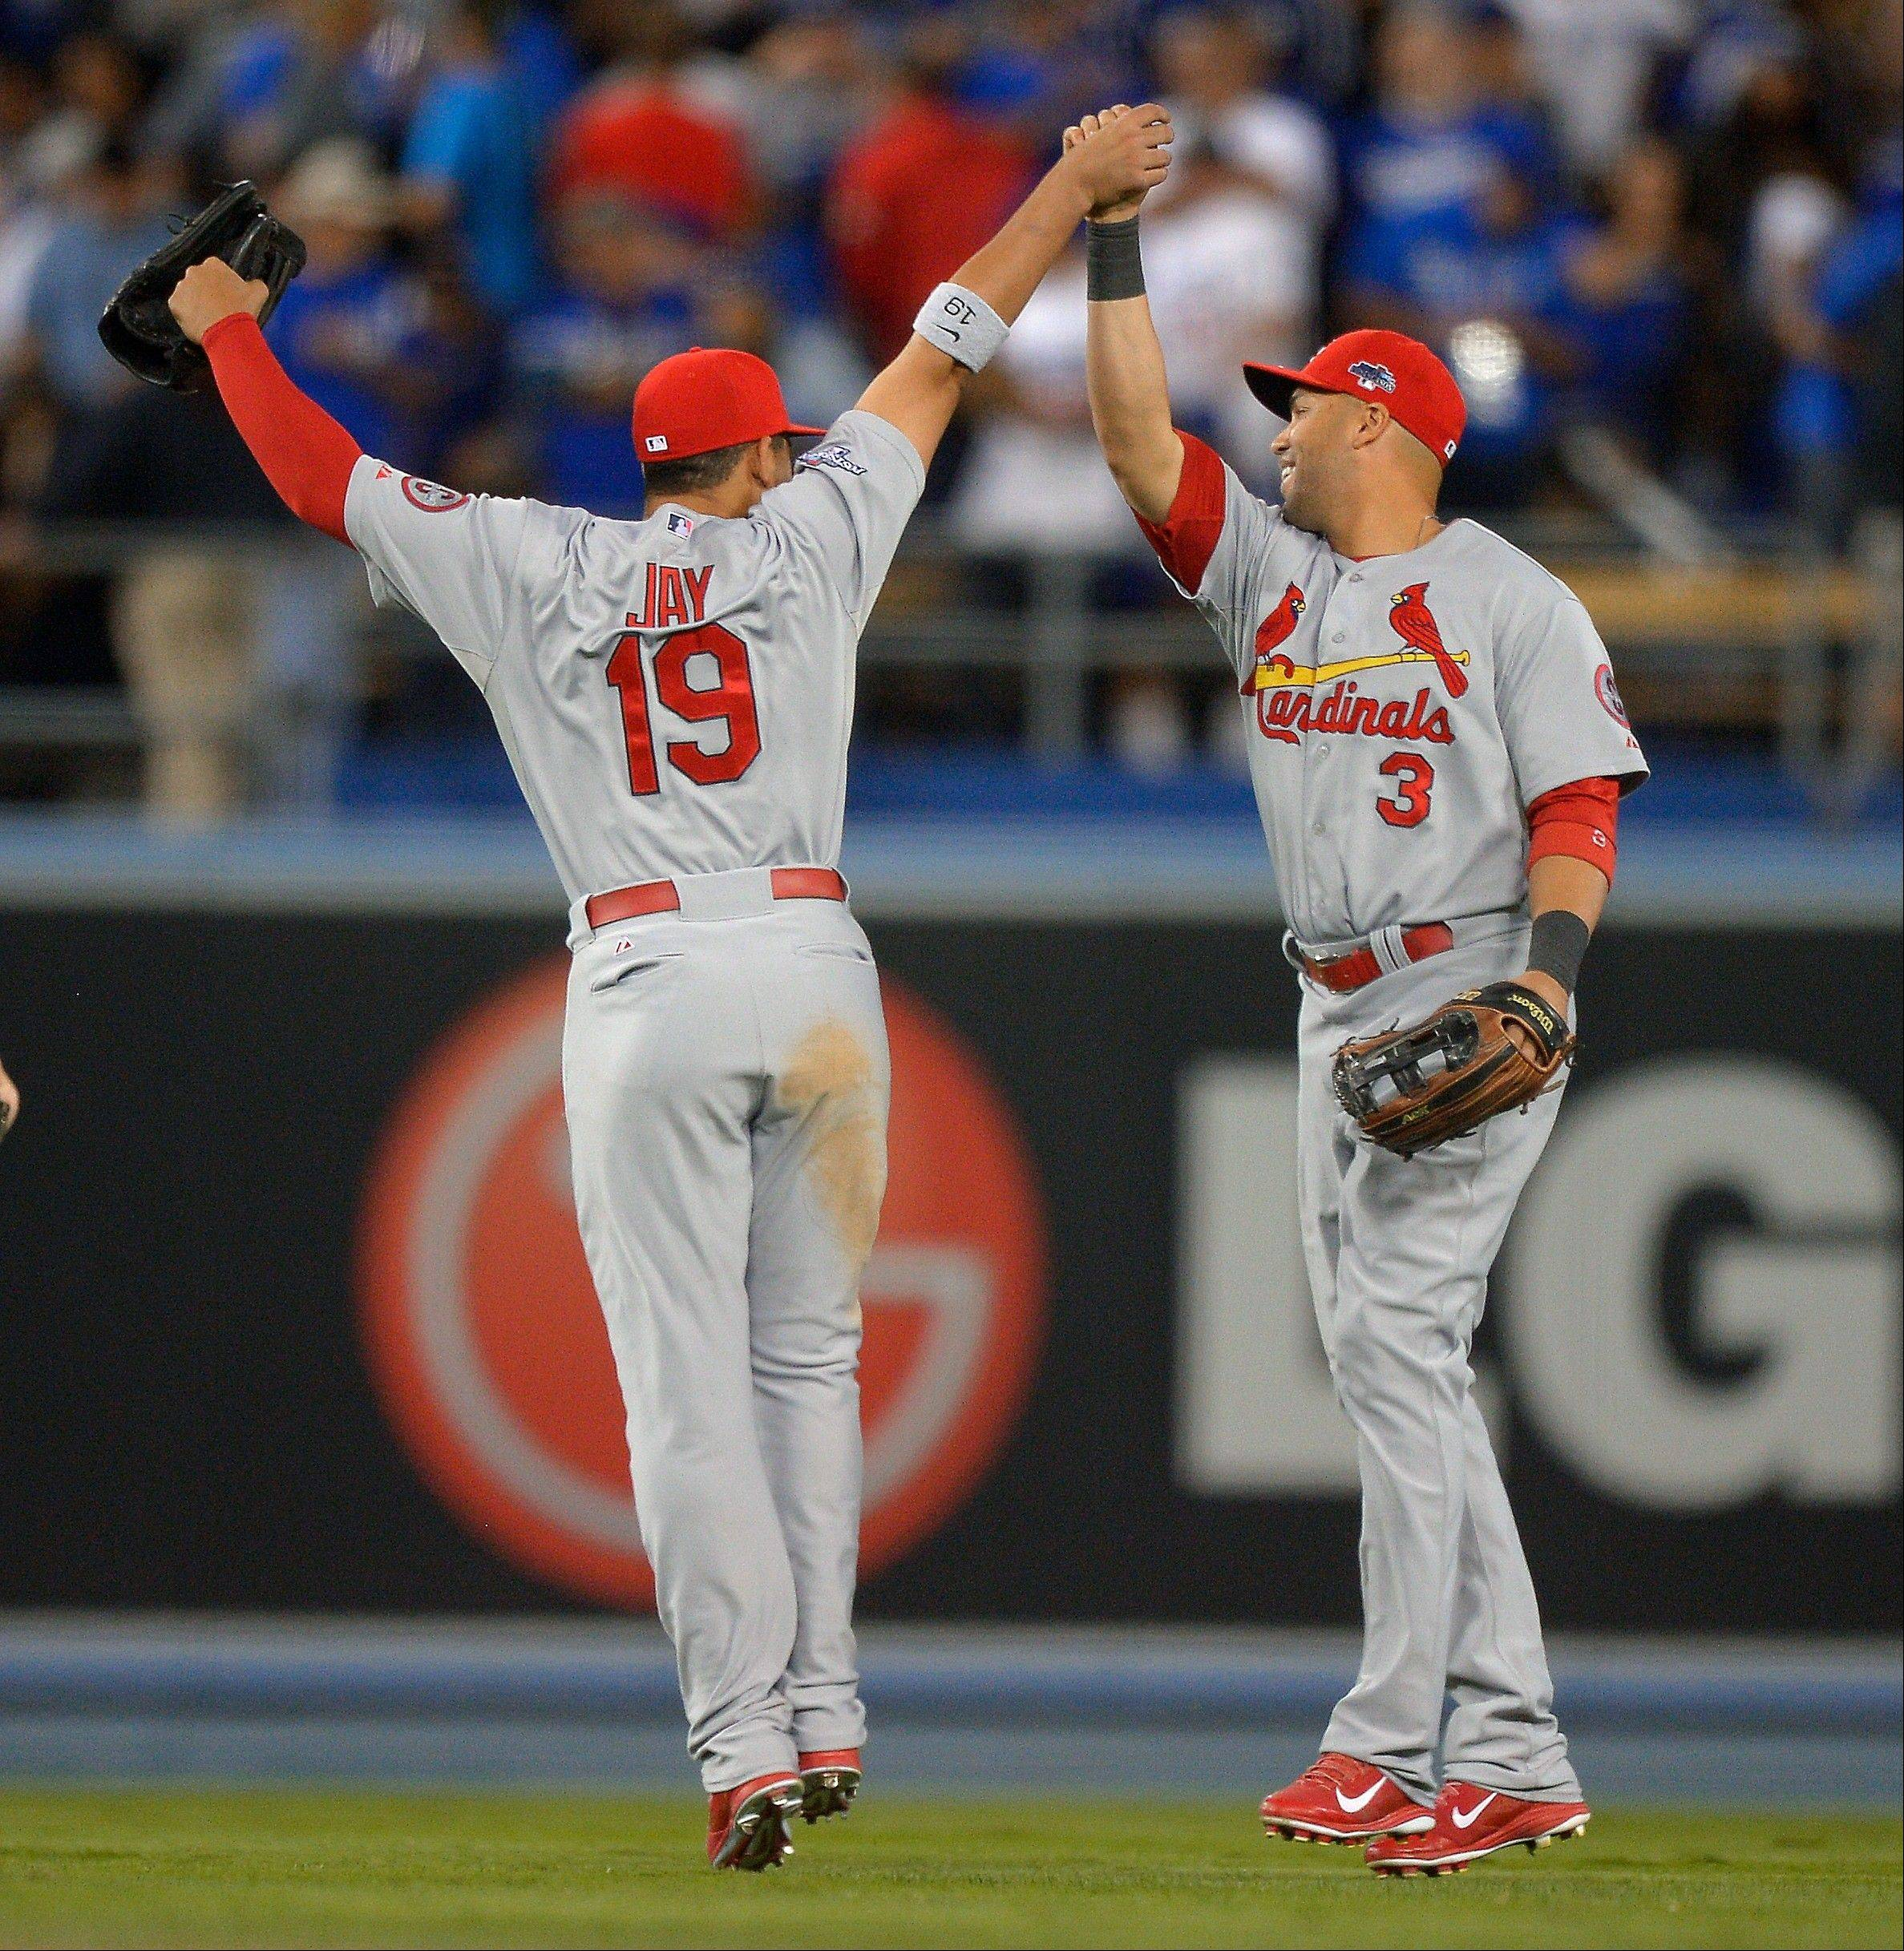 St. Louis Cardinals' Jon Jay and Carlos Beltran, right, celebrate after Game 4 of the National League baseball championship series against the Los Angeles Dodgers Tuesday, Oct. 15, 2013, in Los Angeles. The Cardinals won 4-2 to take a 3-1 lead in the series.